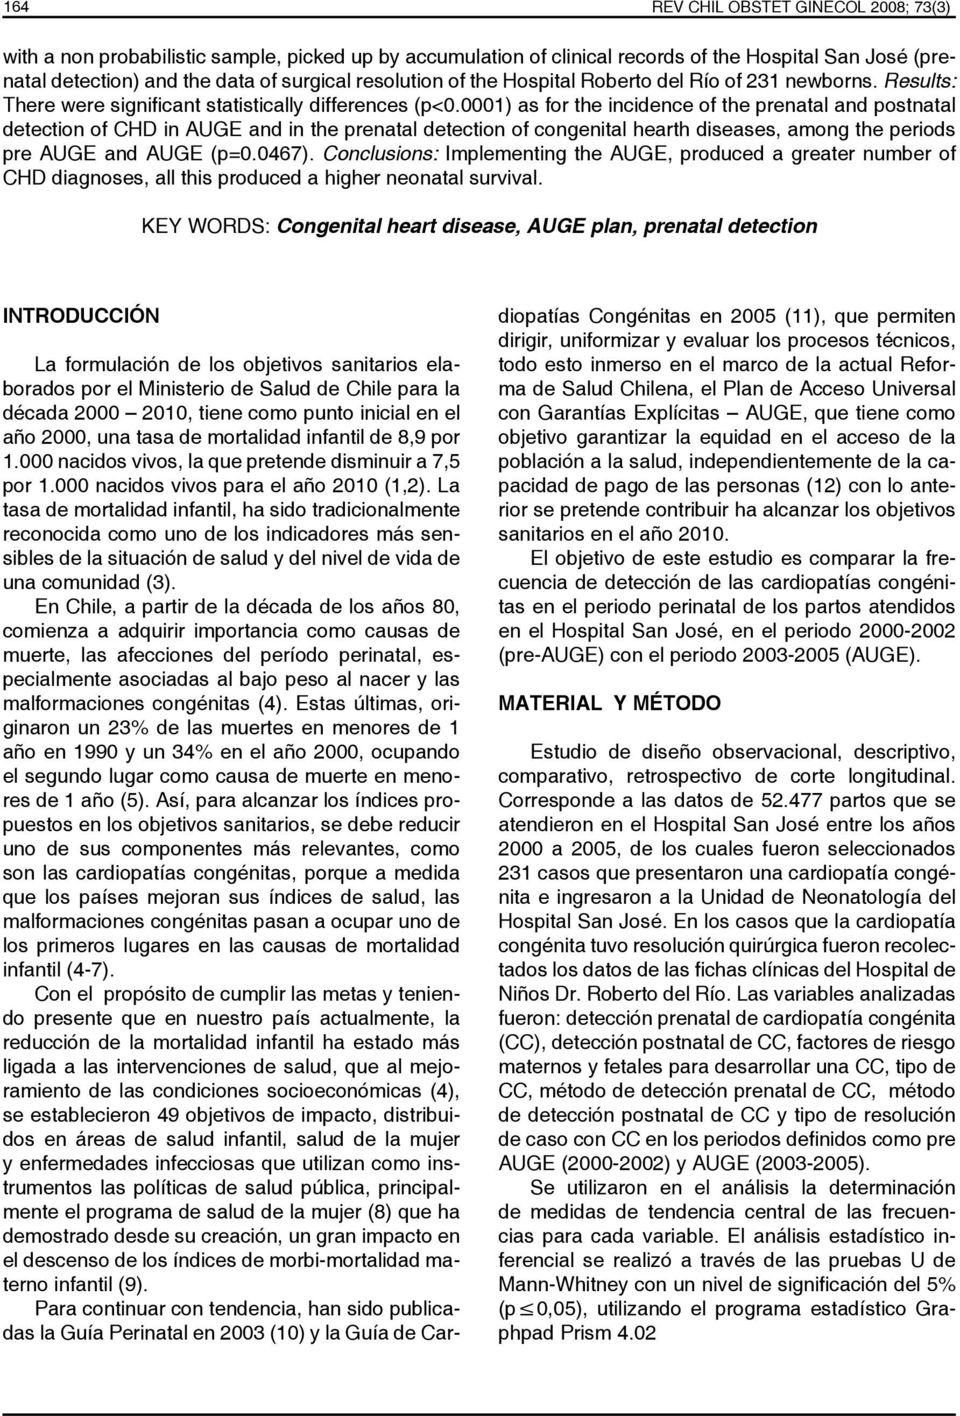 0001) as for the incidence of the prenatal and postnatal detection of CHD in and in the prenatal detection of congenital hearth diseases, among the periods pre and (p=0.0467).